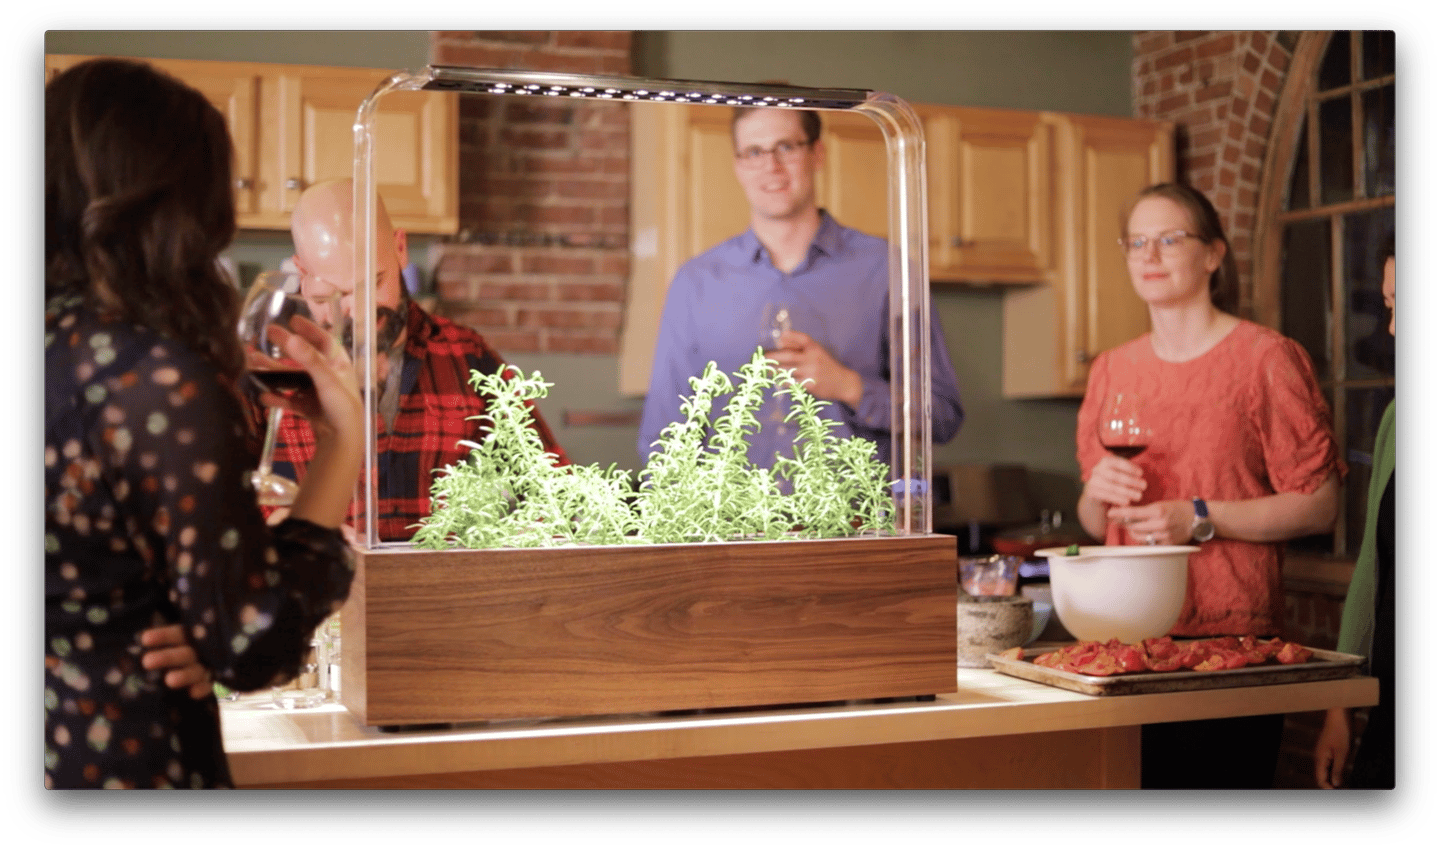 The Herb Garden is a smart and stylish indoor planter that makes growing your own herbs and vegetables easy